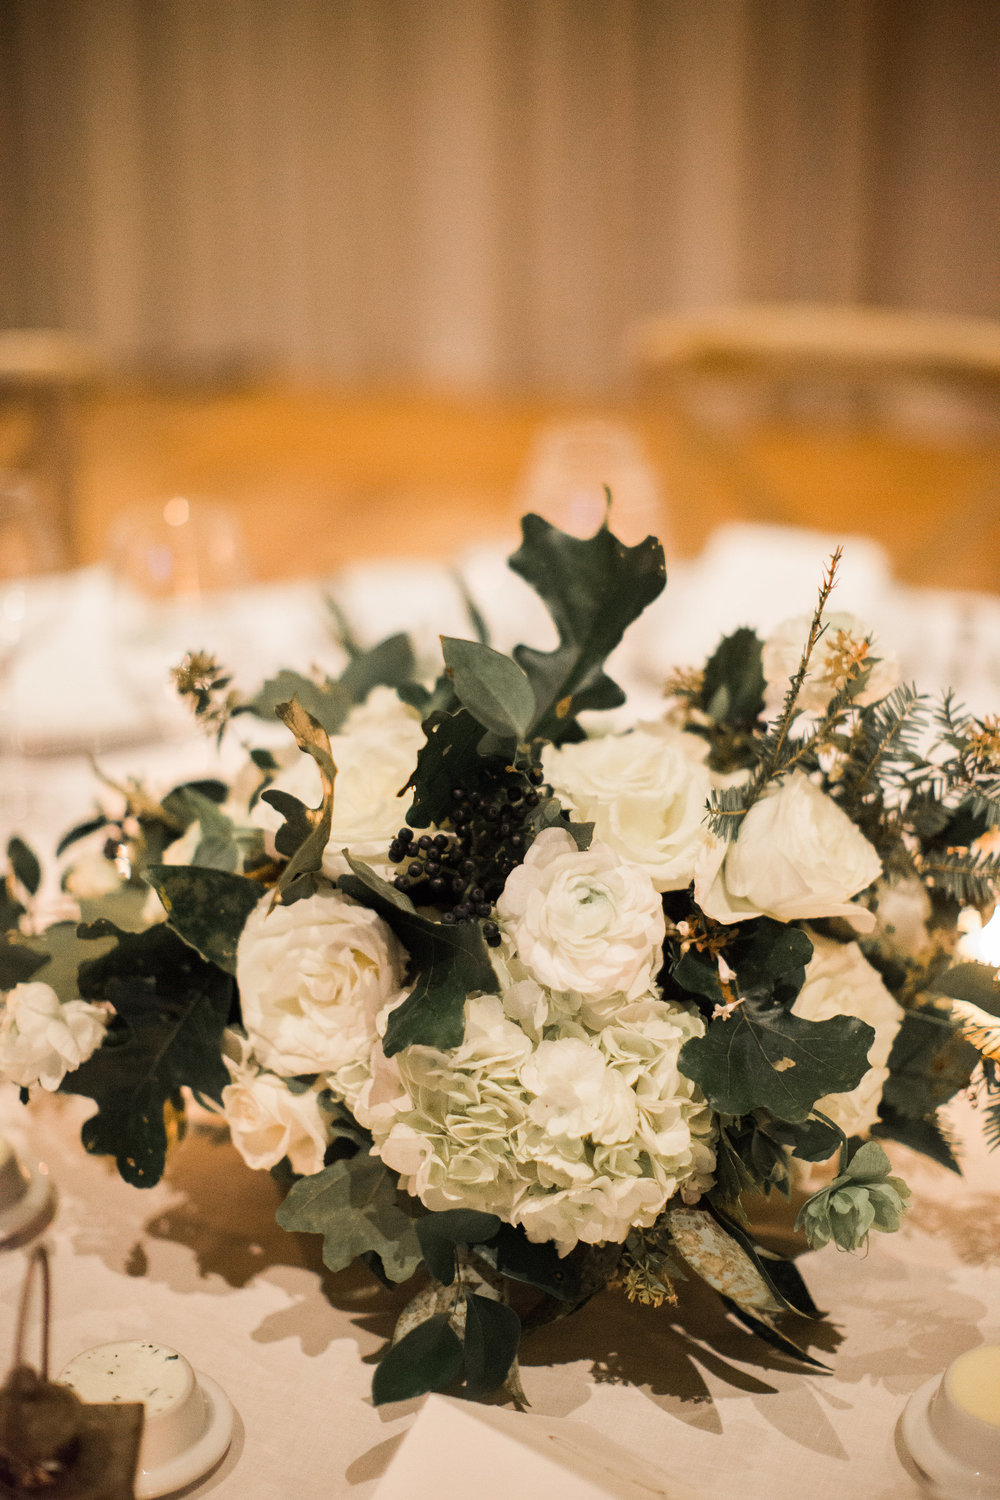 Natural, untamed centerpiece with white flowers and greenery // Blackberry Farm Wedding Florist